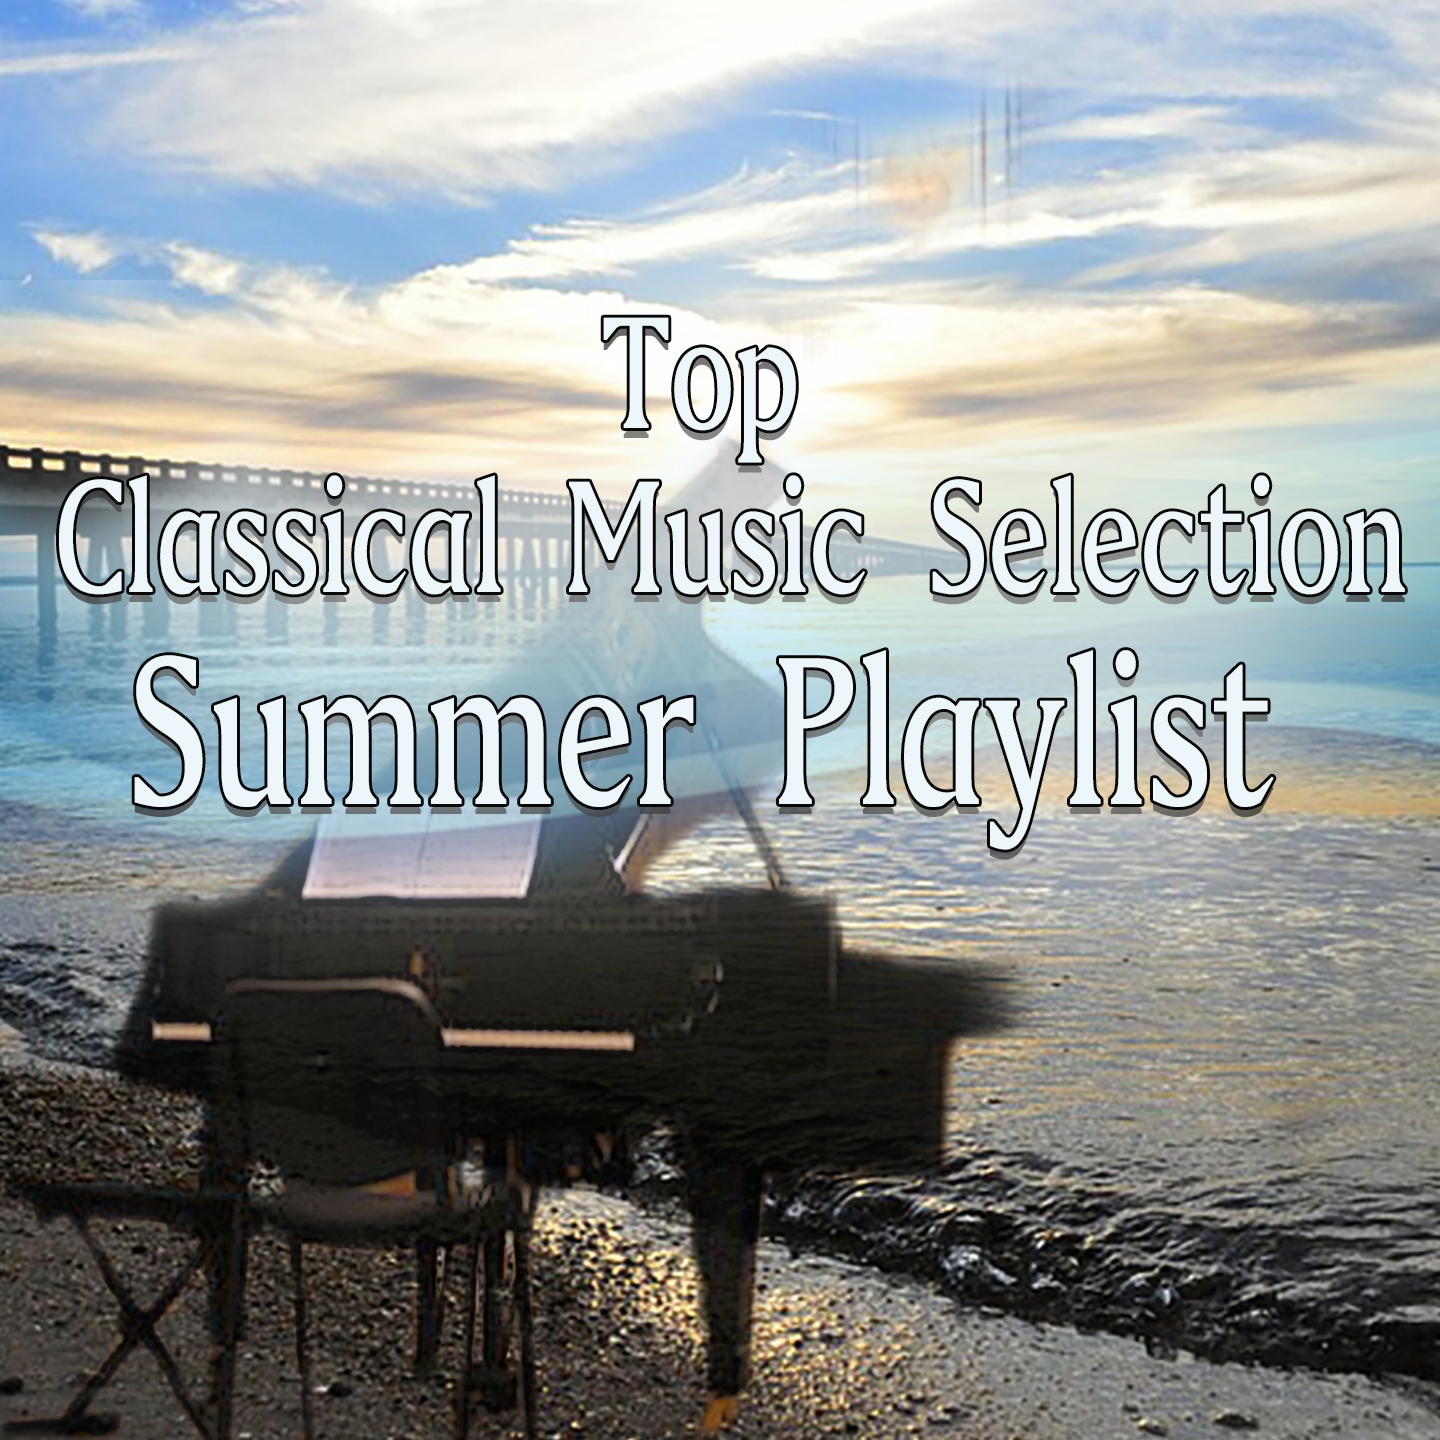 Top Classical Music Selection